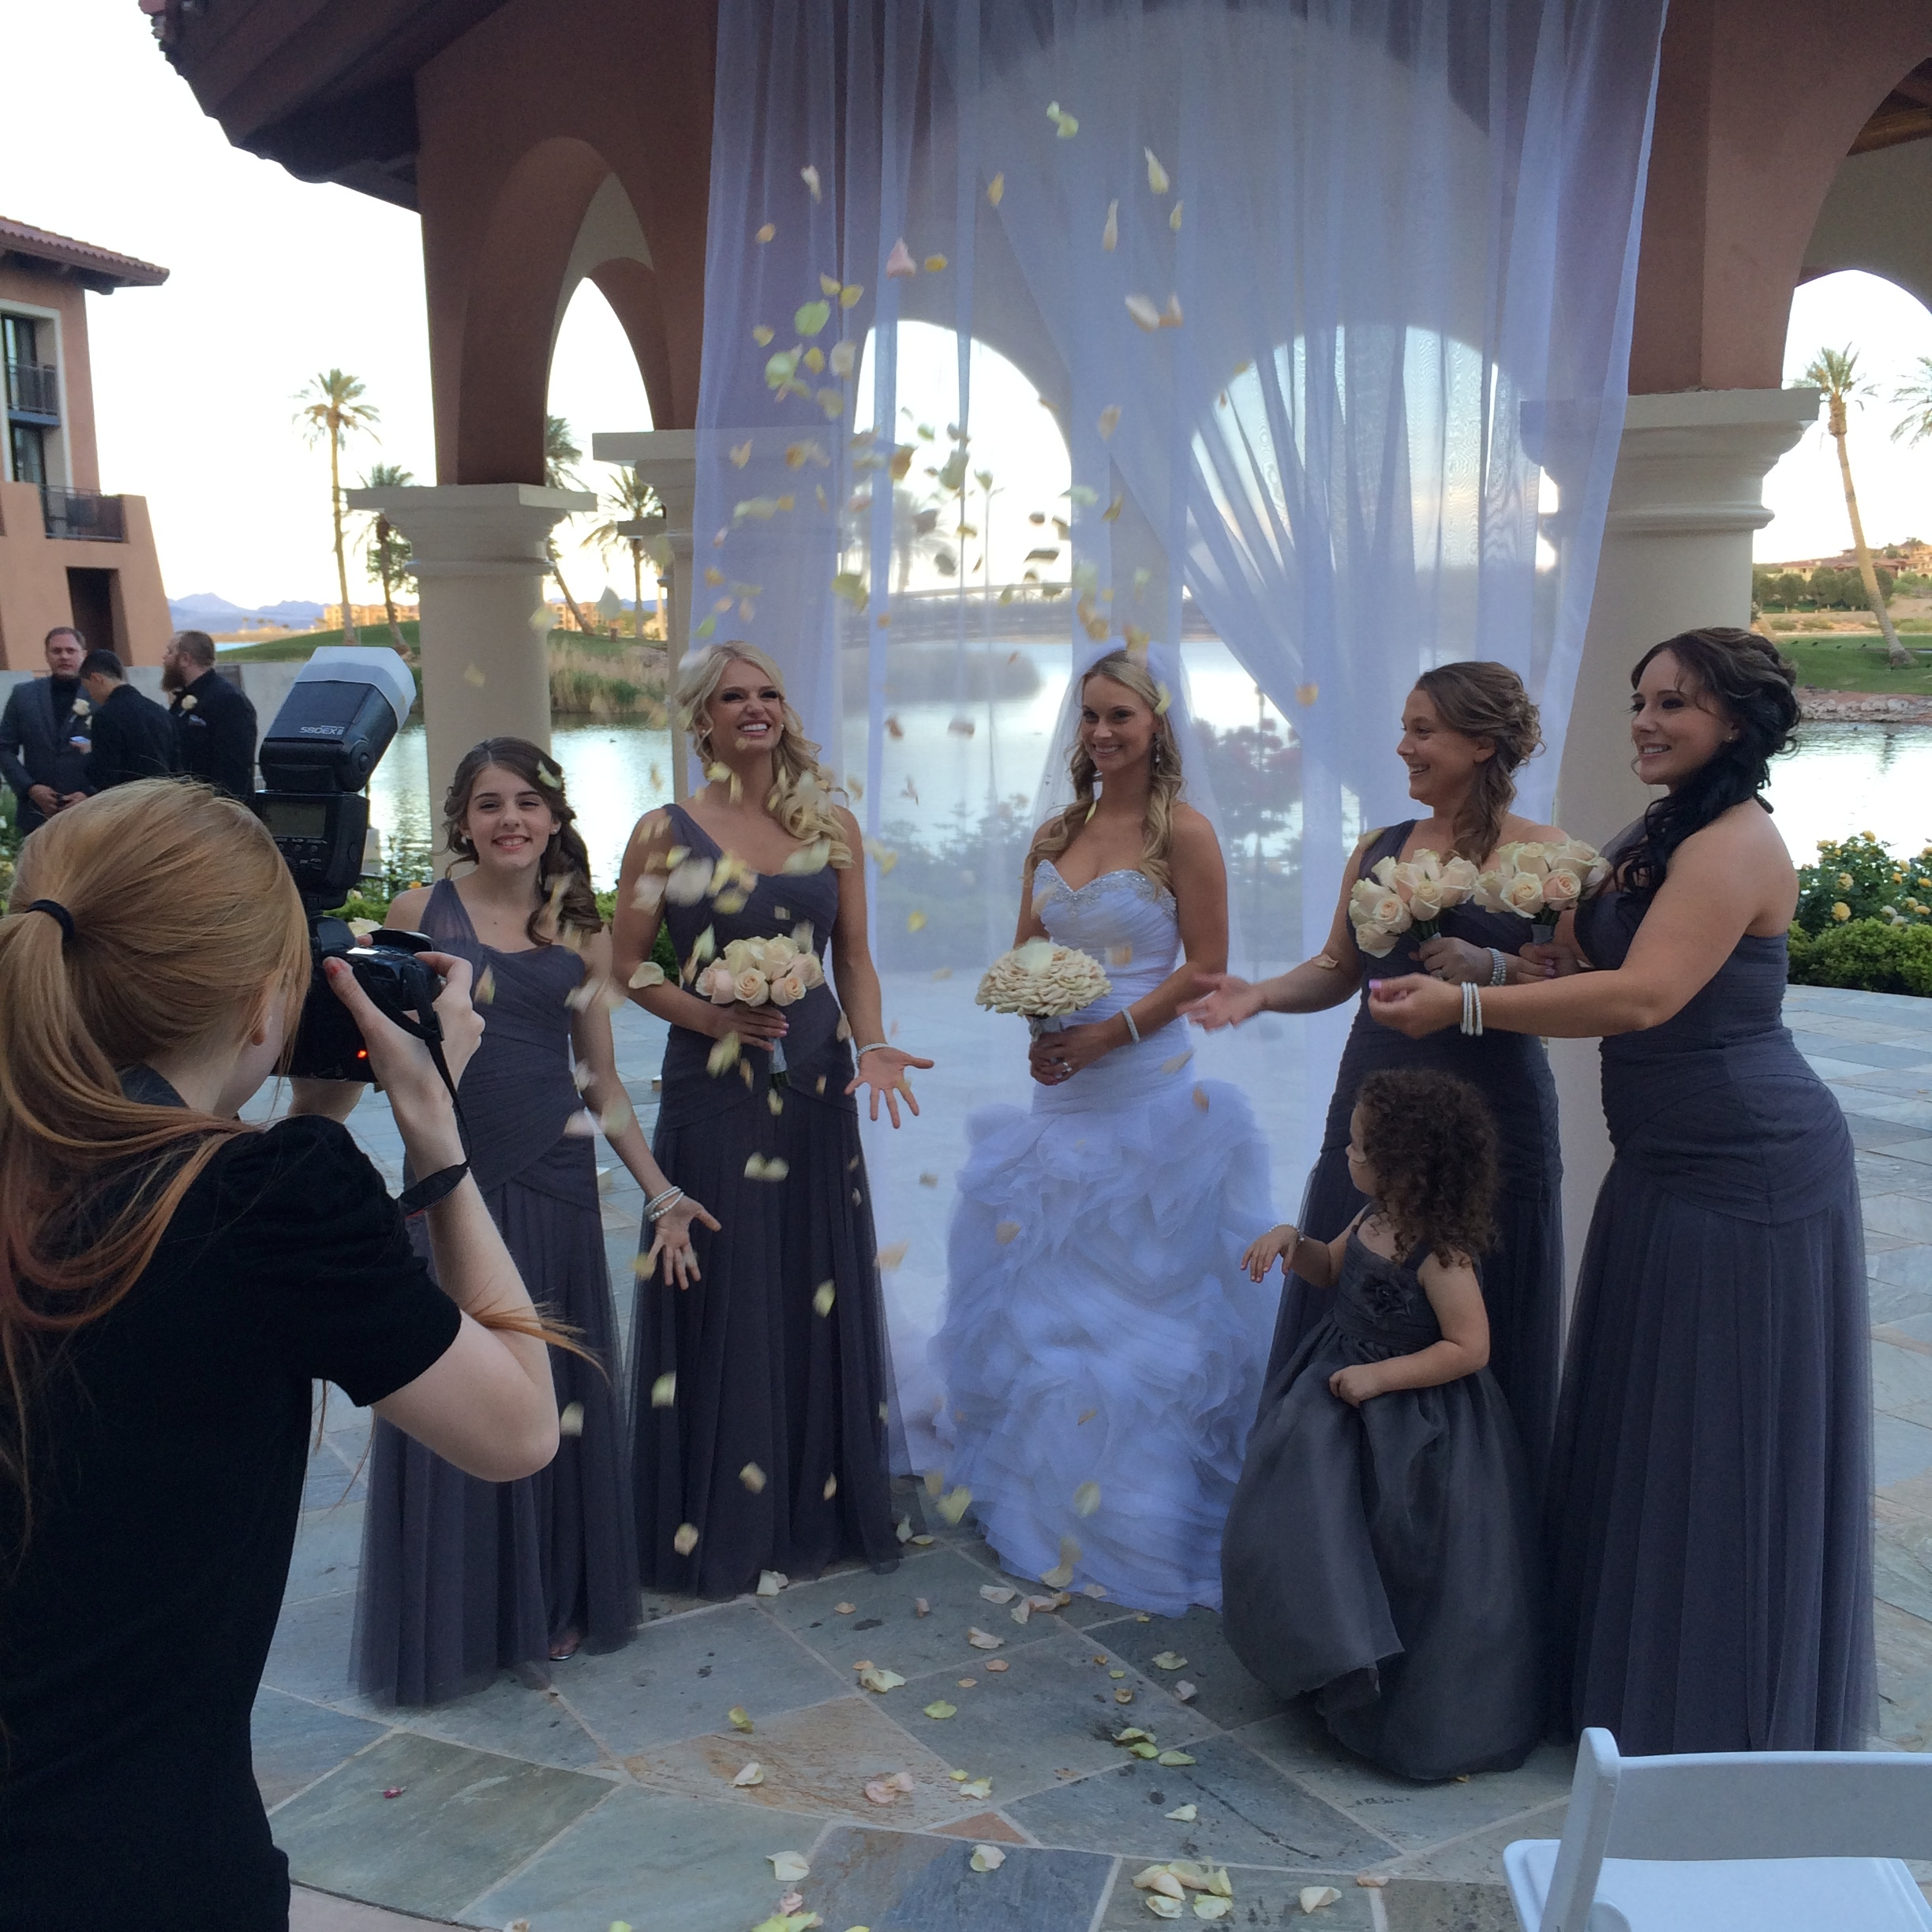 Behind the scenes - Cannot wait to se what this photo looks like!   Las Vegas Wedding Planner: Andrea Eppolito | Wedding Venue: Westin Lake Las Vegas | Wedding Dress: Cosmobella | Floral and Decor: Naakiti Floral  |  Photography by Altf.com